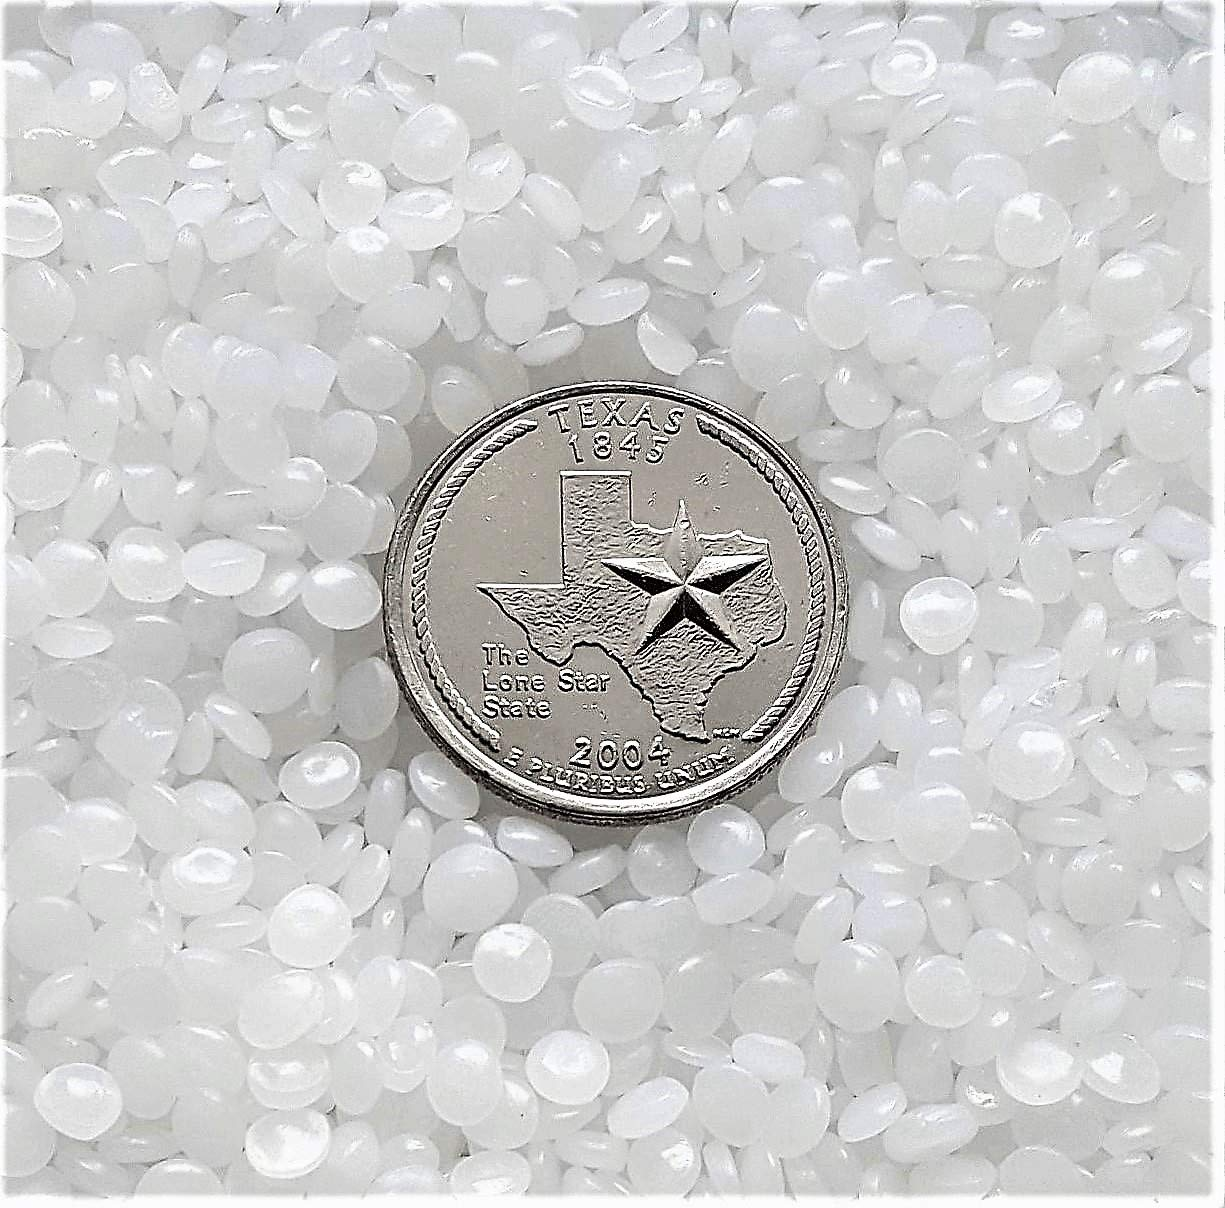 Victory Pellets Flatter Cut (50 LBS) Plastic Poly Pellets for Weighted Blankets, Vests, Rock Tumbling, Reborn Dolls, Plush Toys, Draft Stoppers, ASMR Therapy & Sensory Lap Pads. Made in USA. by Victory Pellets